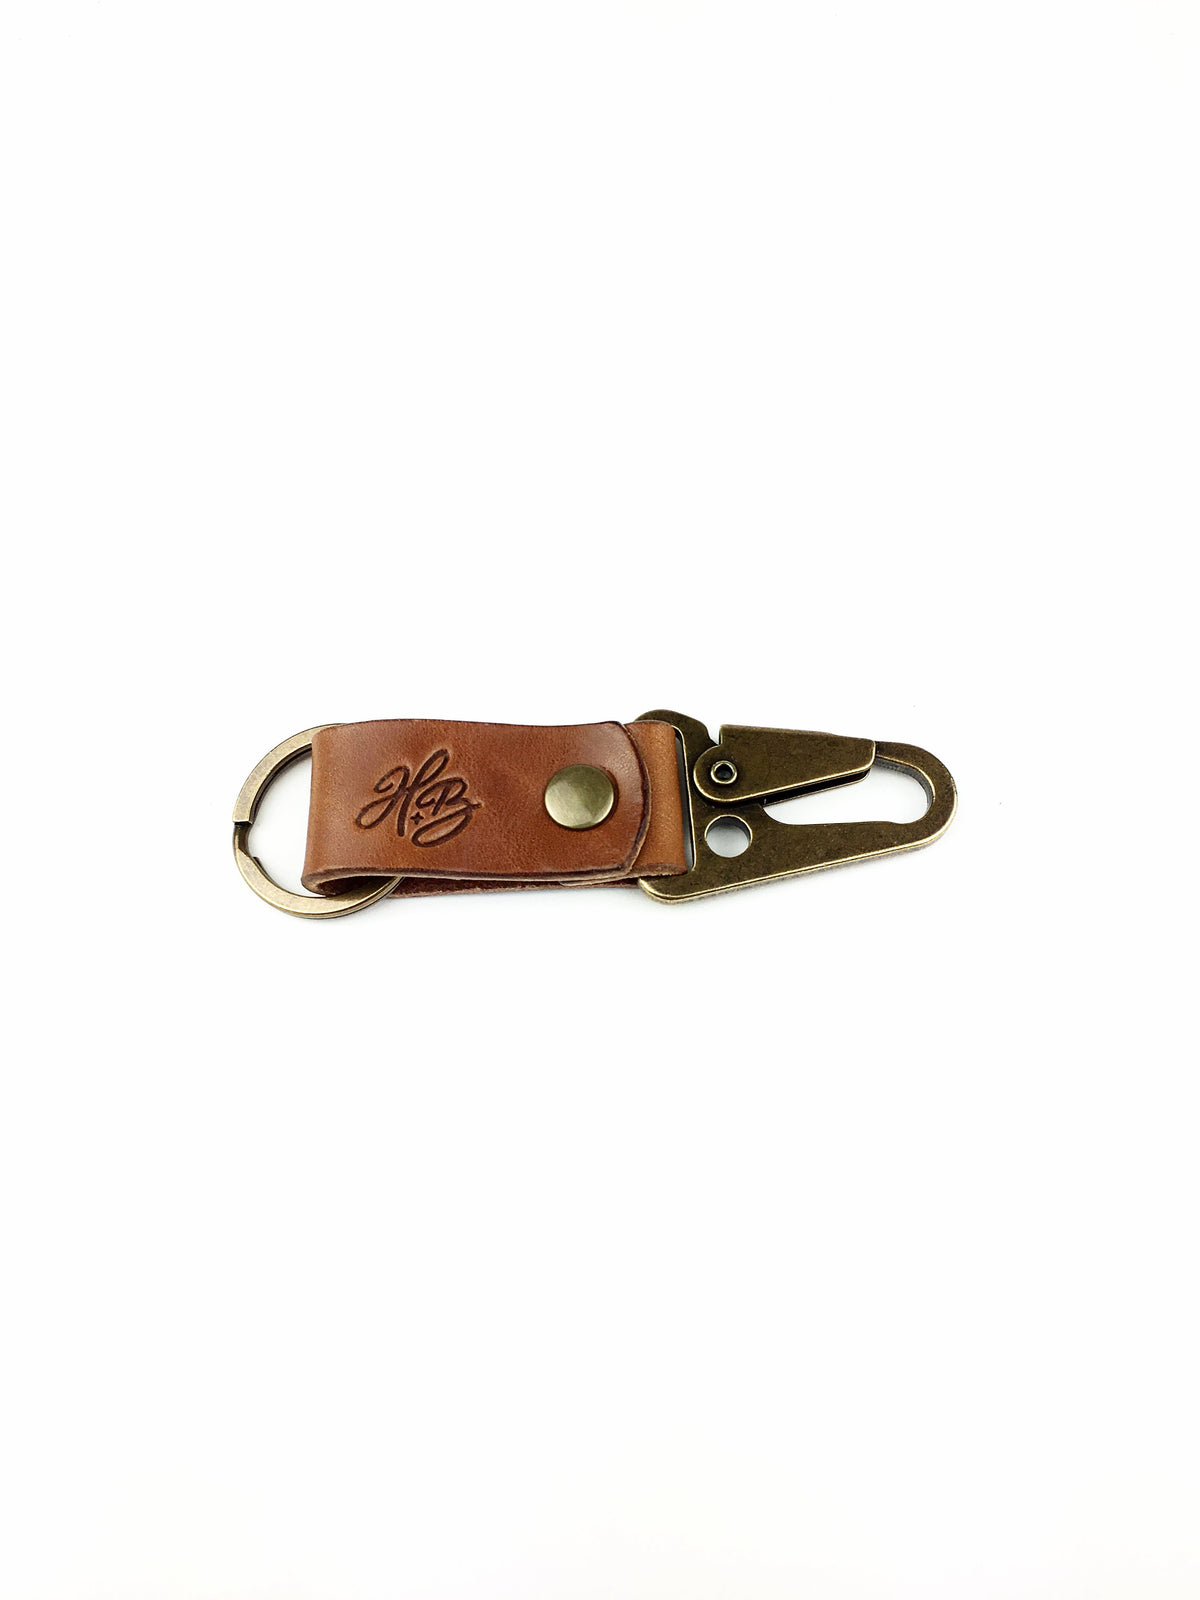 H+B KEY FOB | BUCK BROWN LEATHER FOB